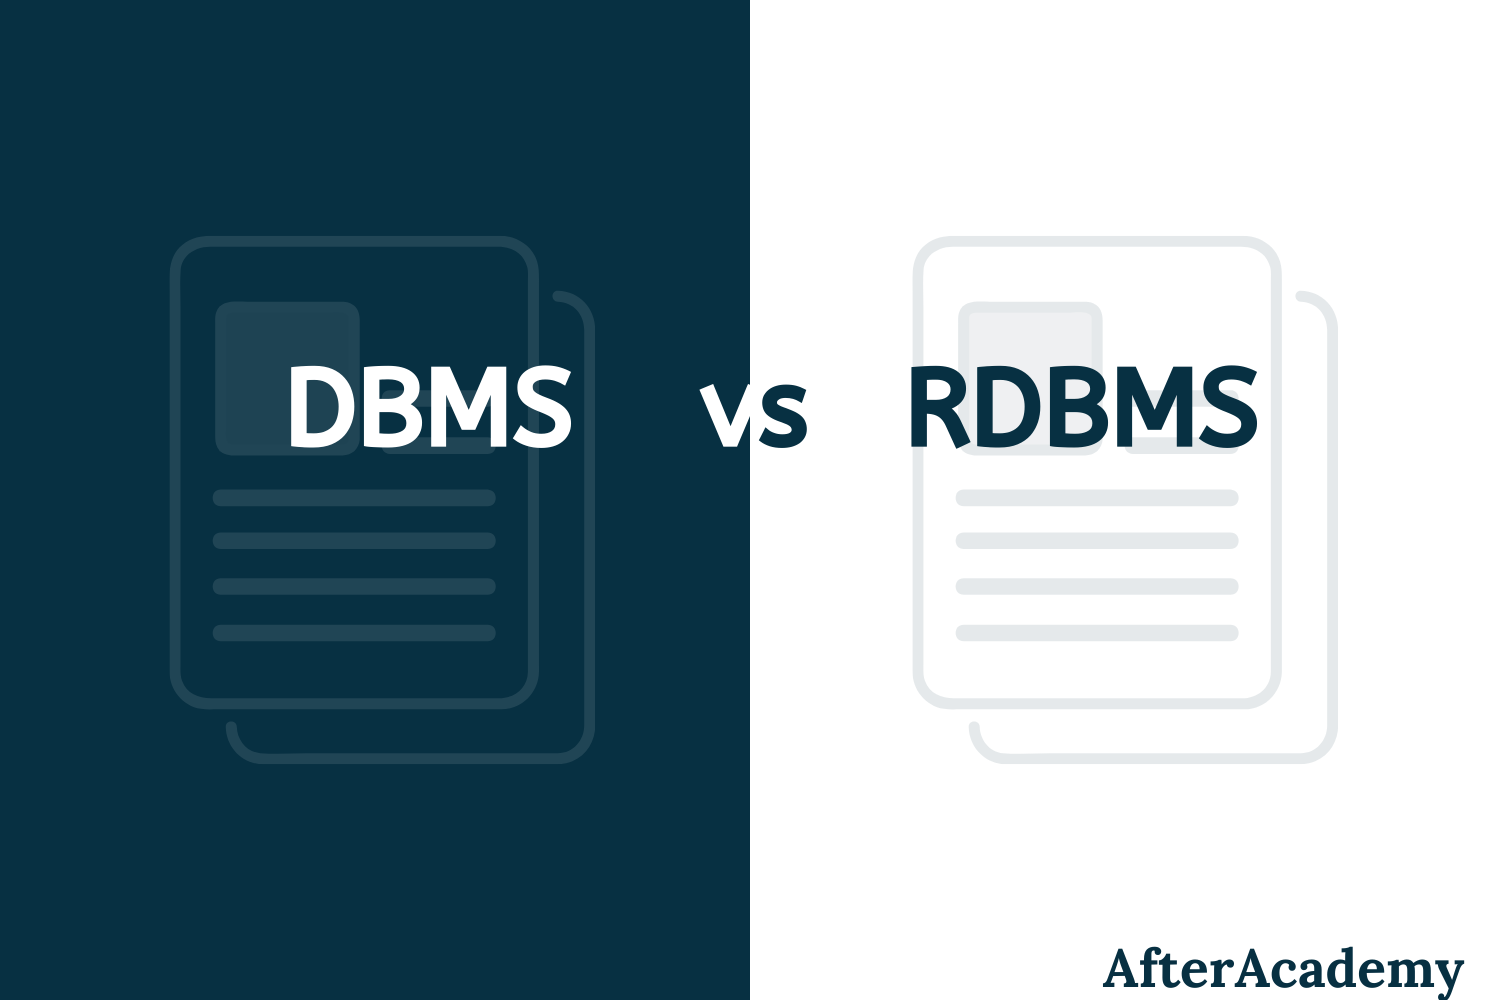 What is the difference between DBMS and RDBMS?